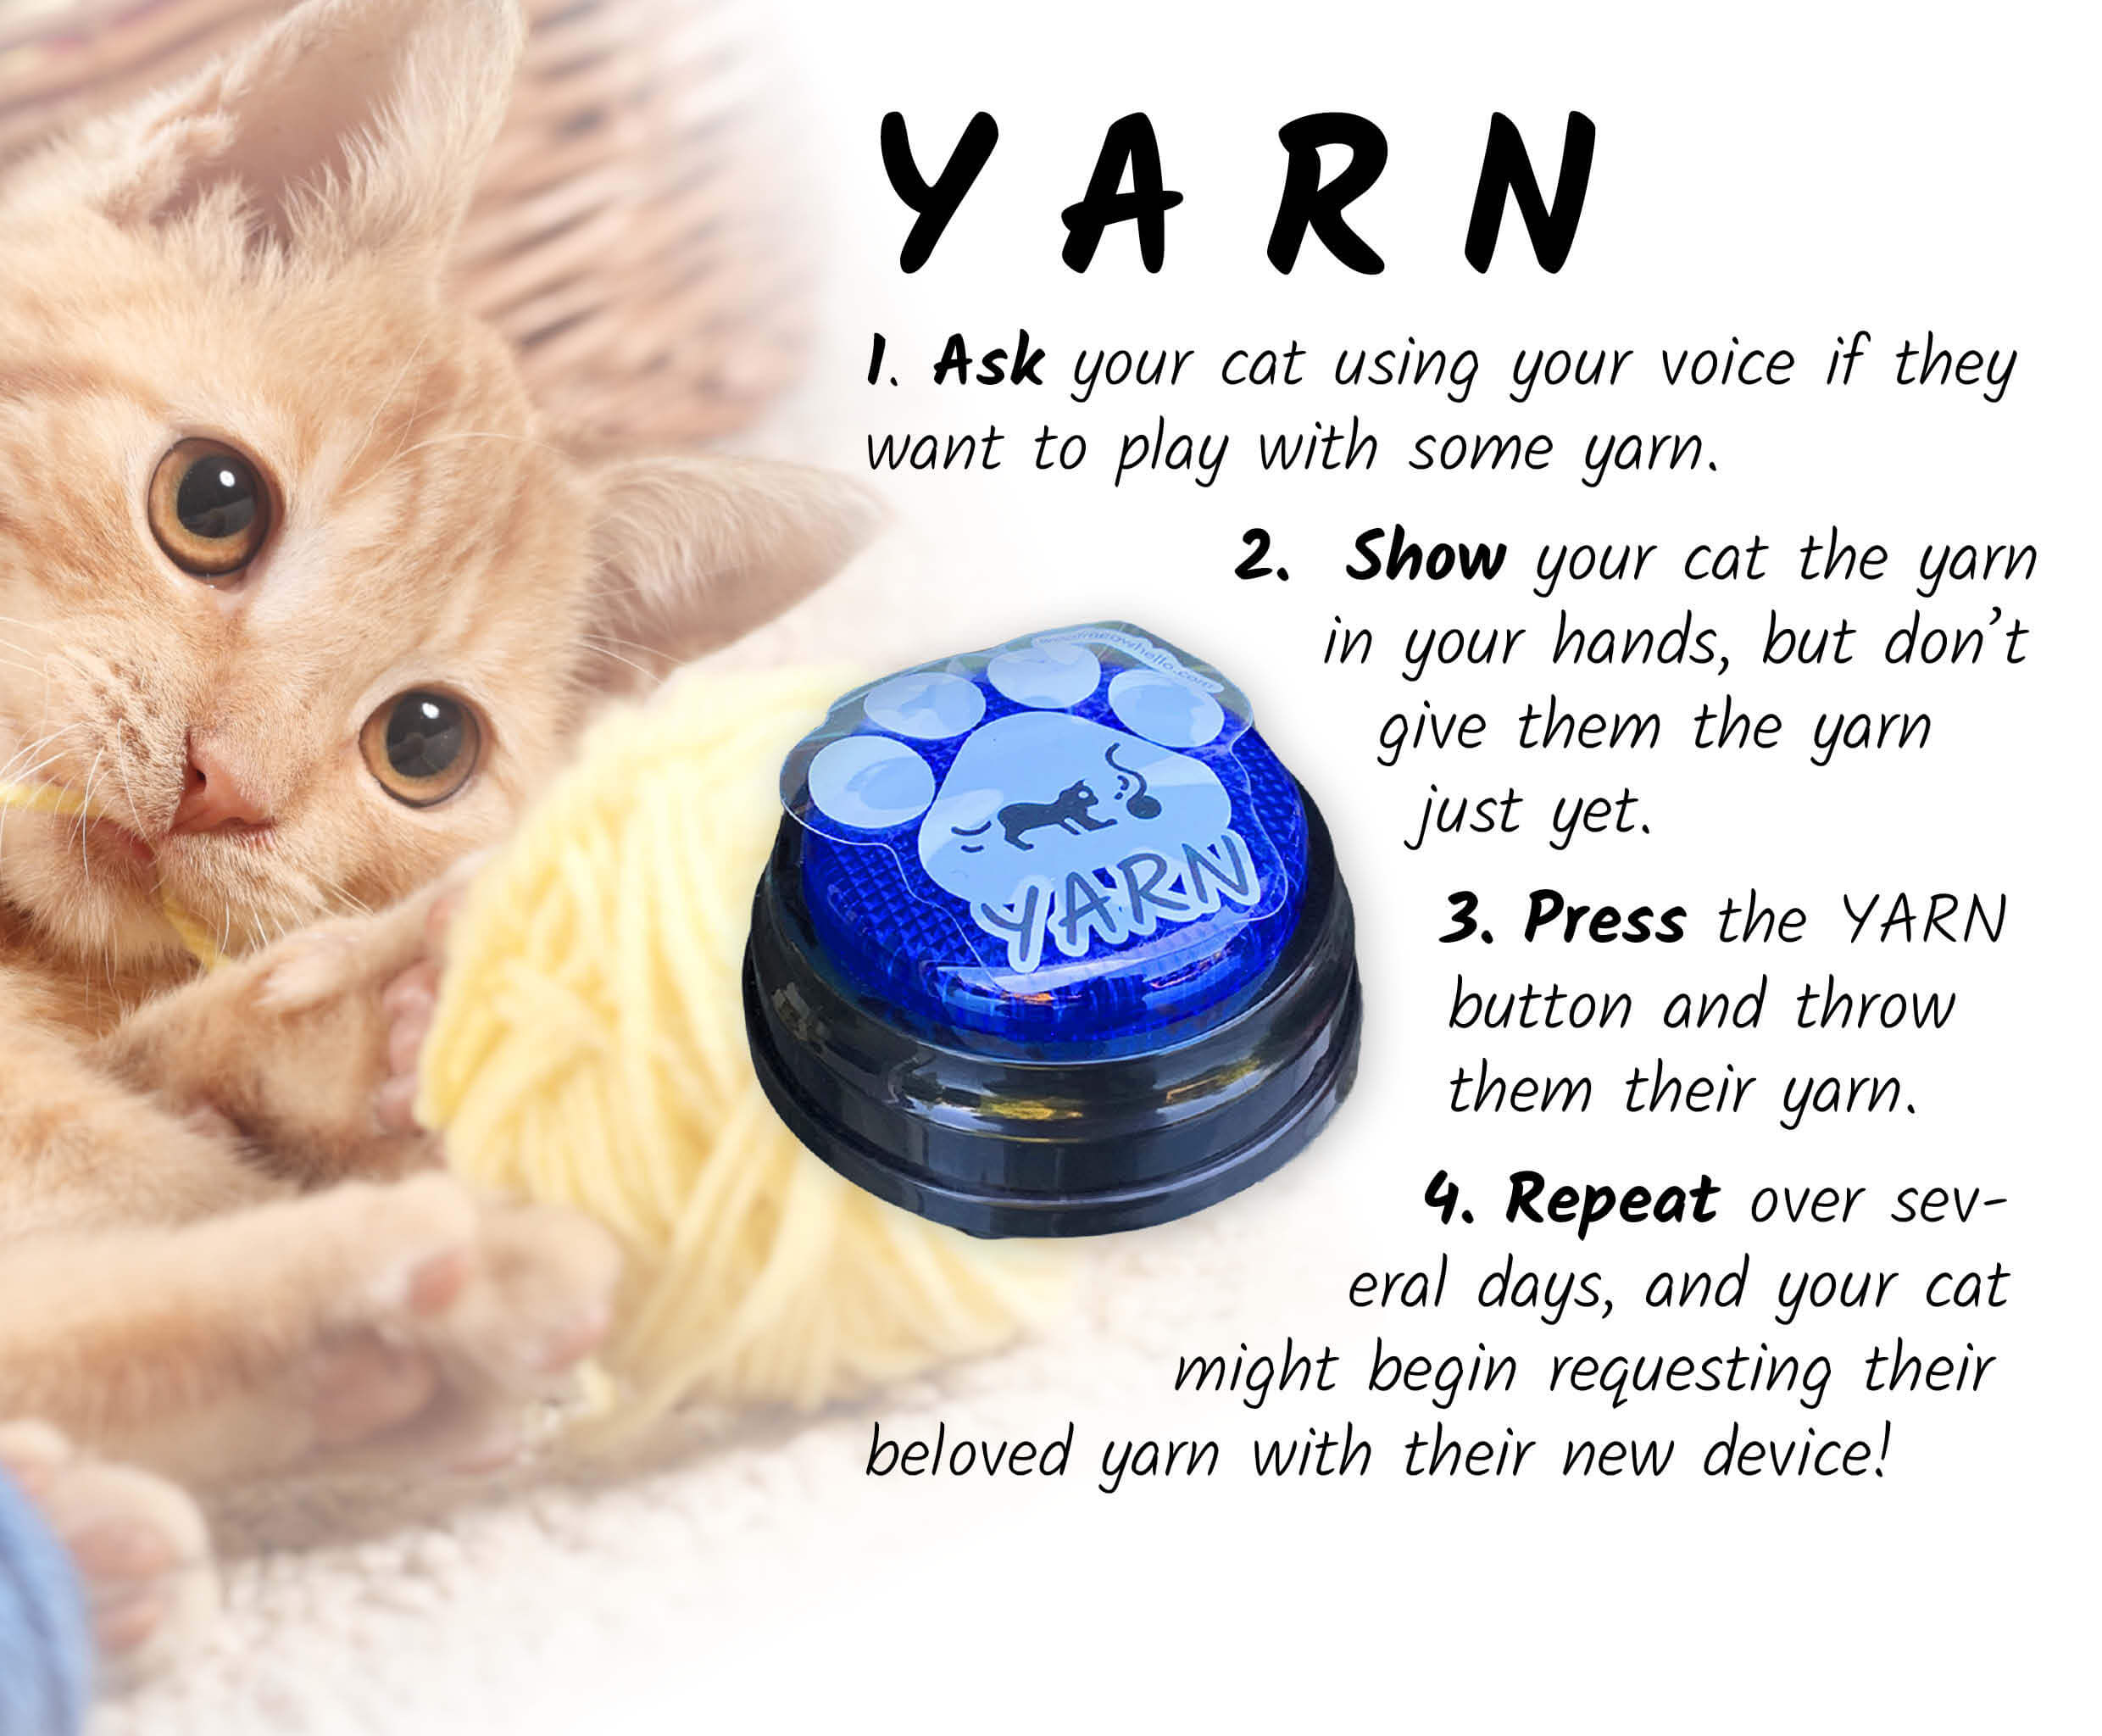 To teach your cat to use their YARN speech button, first ask them using your voice if they want to play with some yarn. Show your cat the yarn in your hands, but don't give them the yarn just yet. Have them watch you press their YARN button before throwing them their yarn. Repeat over several days, and your cat might begin requesting their beloved yarn with their new device!